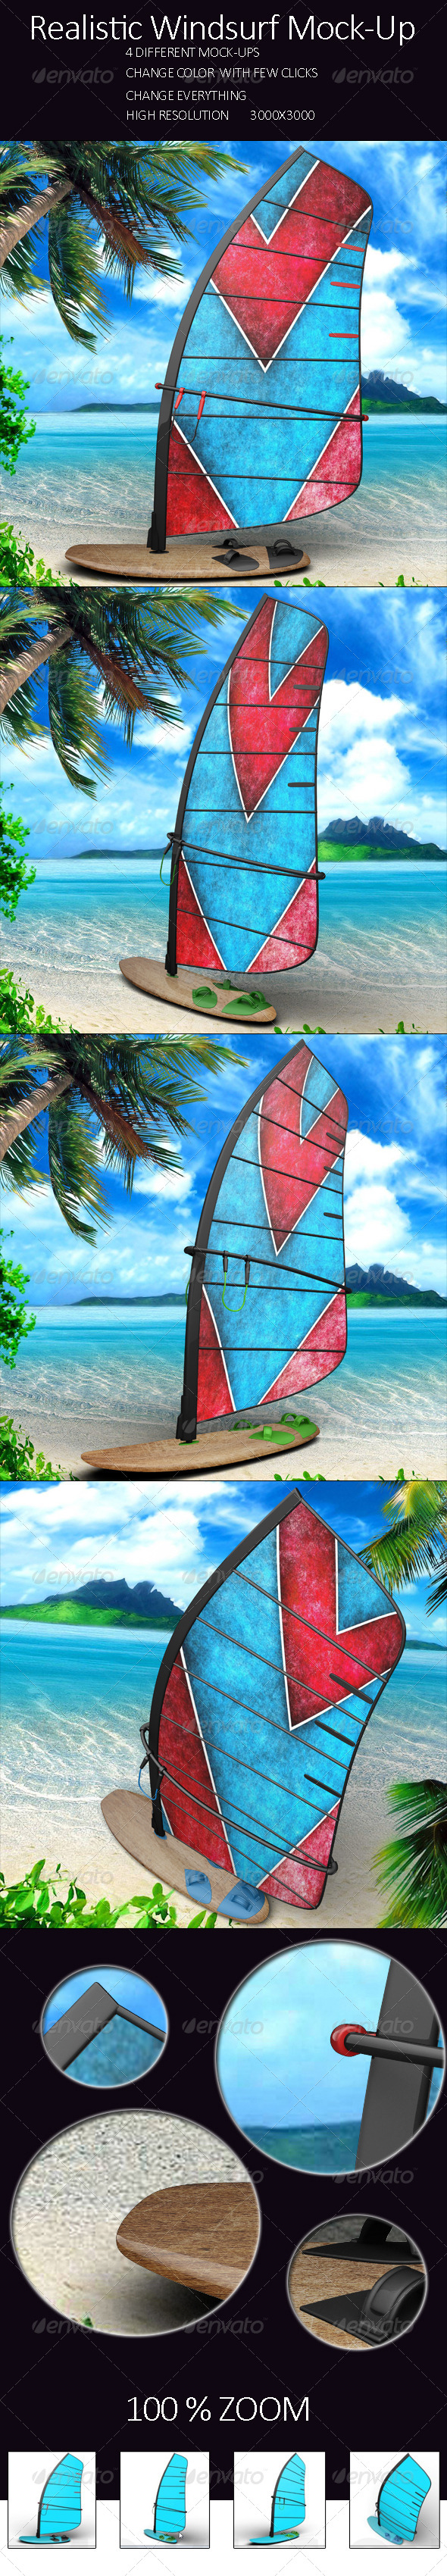 Realistic Windsurf Mock Up